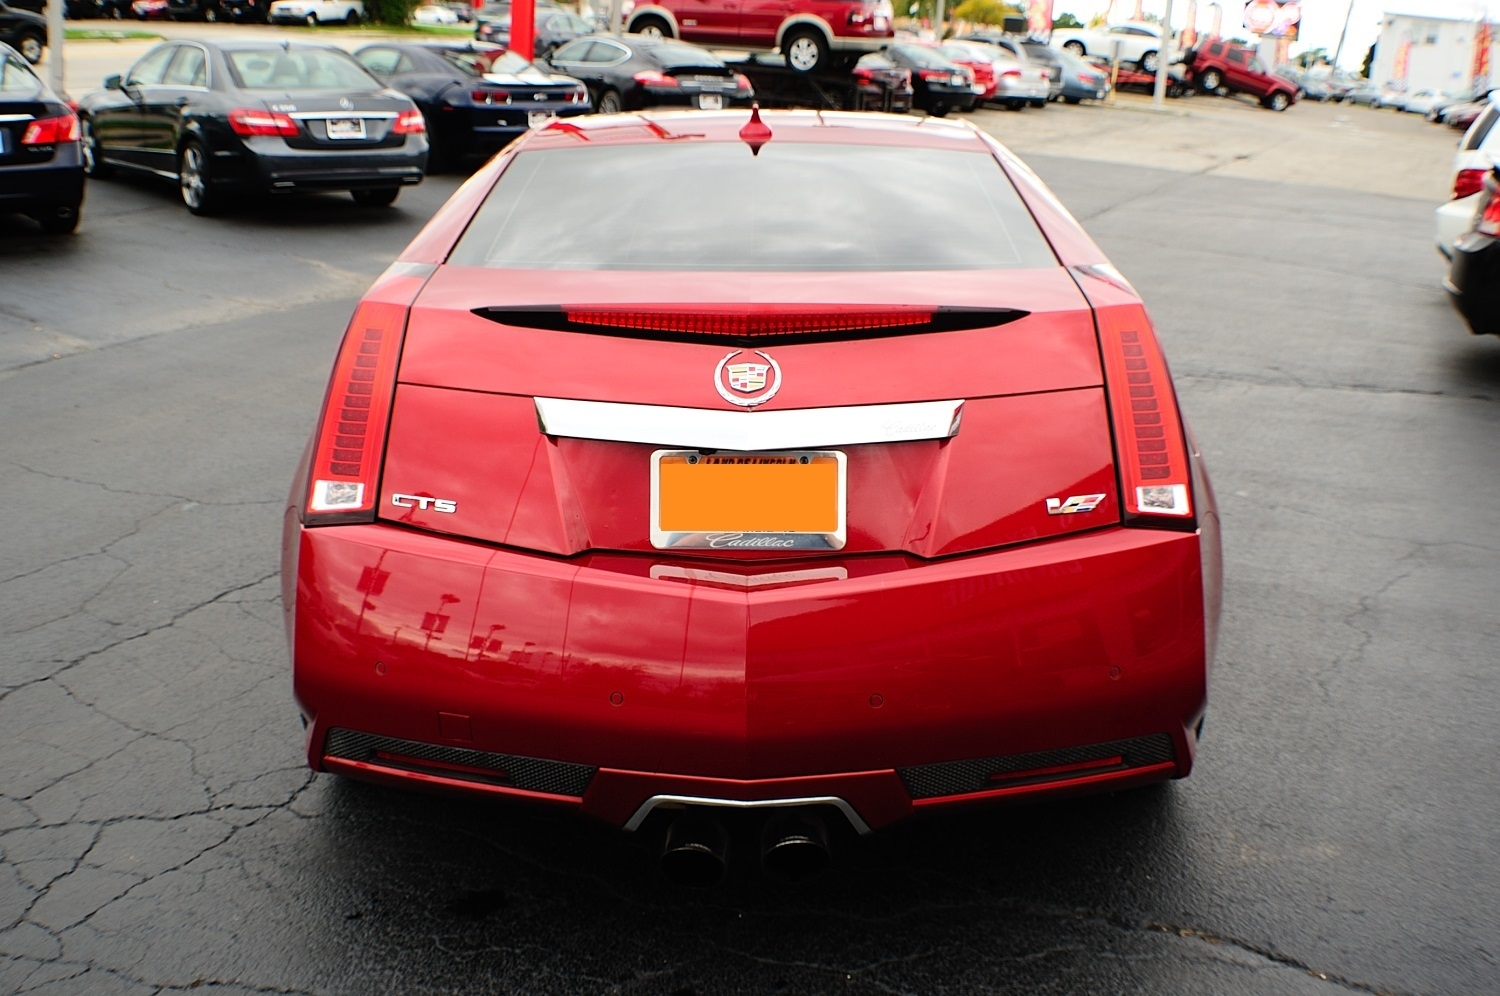 2011 Cadillac CTSV Red Supercharger Used Coupe Sale Buffalo Grove Deerfield Fox Lake